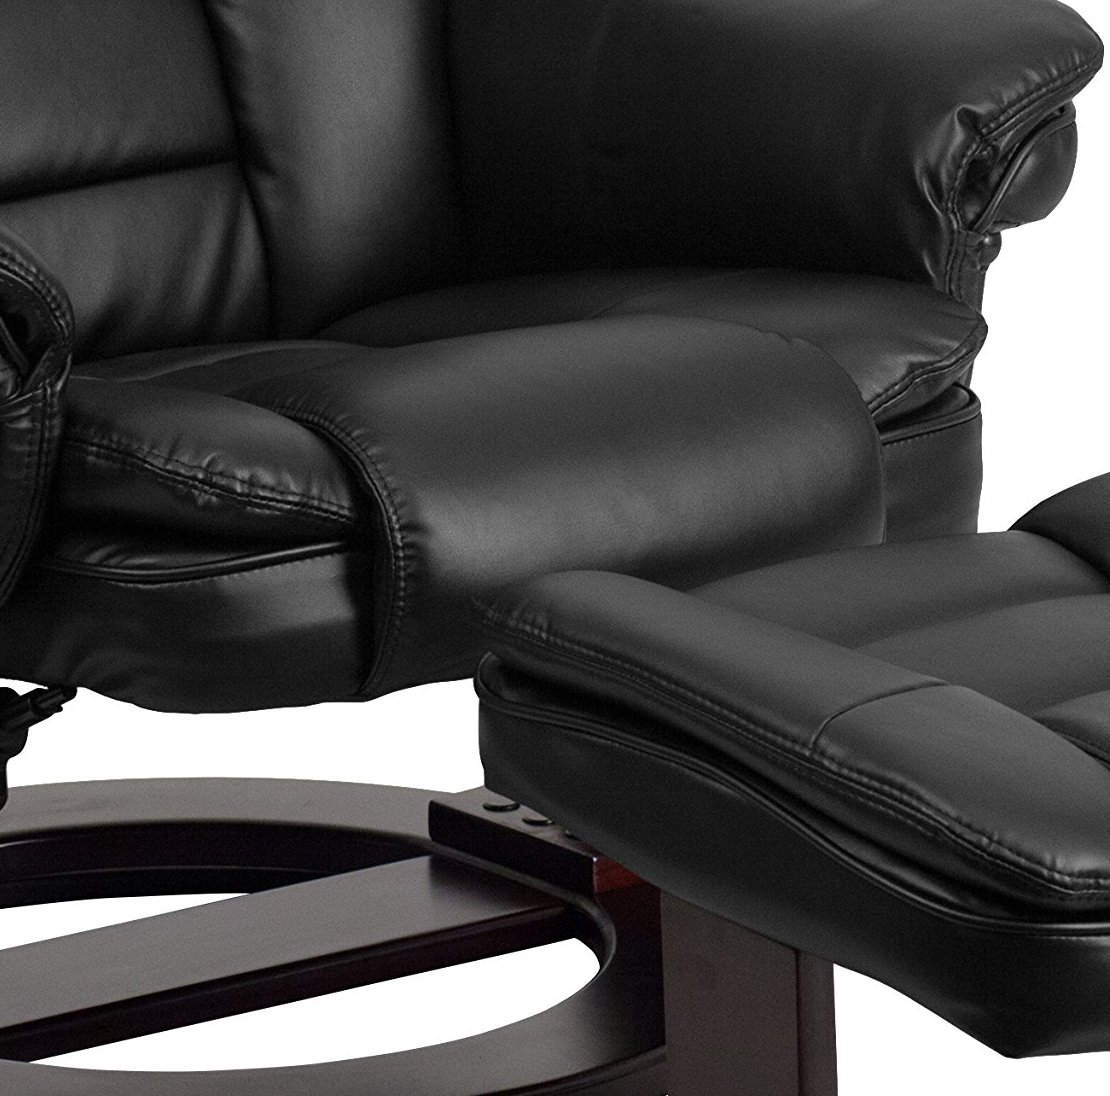 Flash Furniture BT-7818-BK-GG Contemporary Black Leather Recliner//Ottoman with Swiveling Mahogany Wood Base